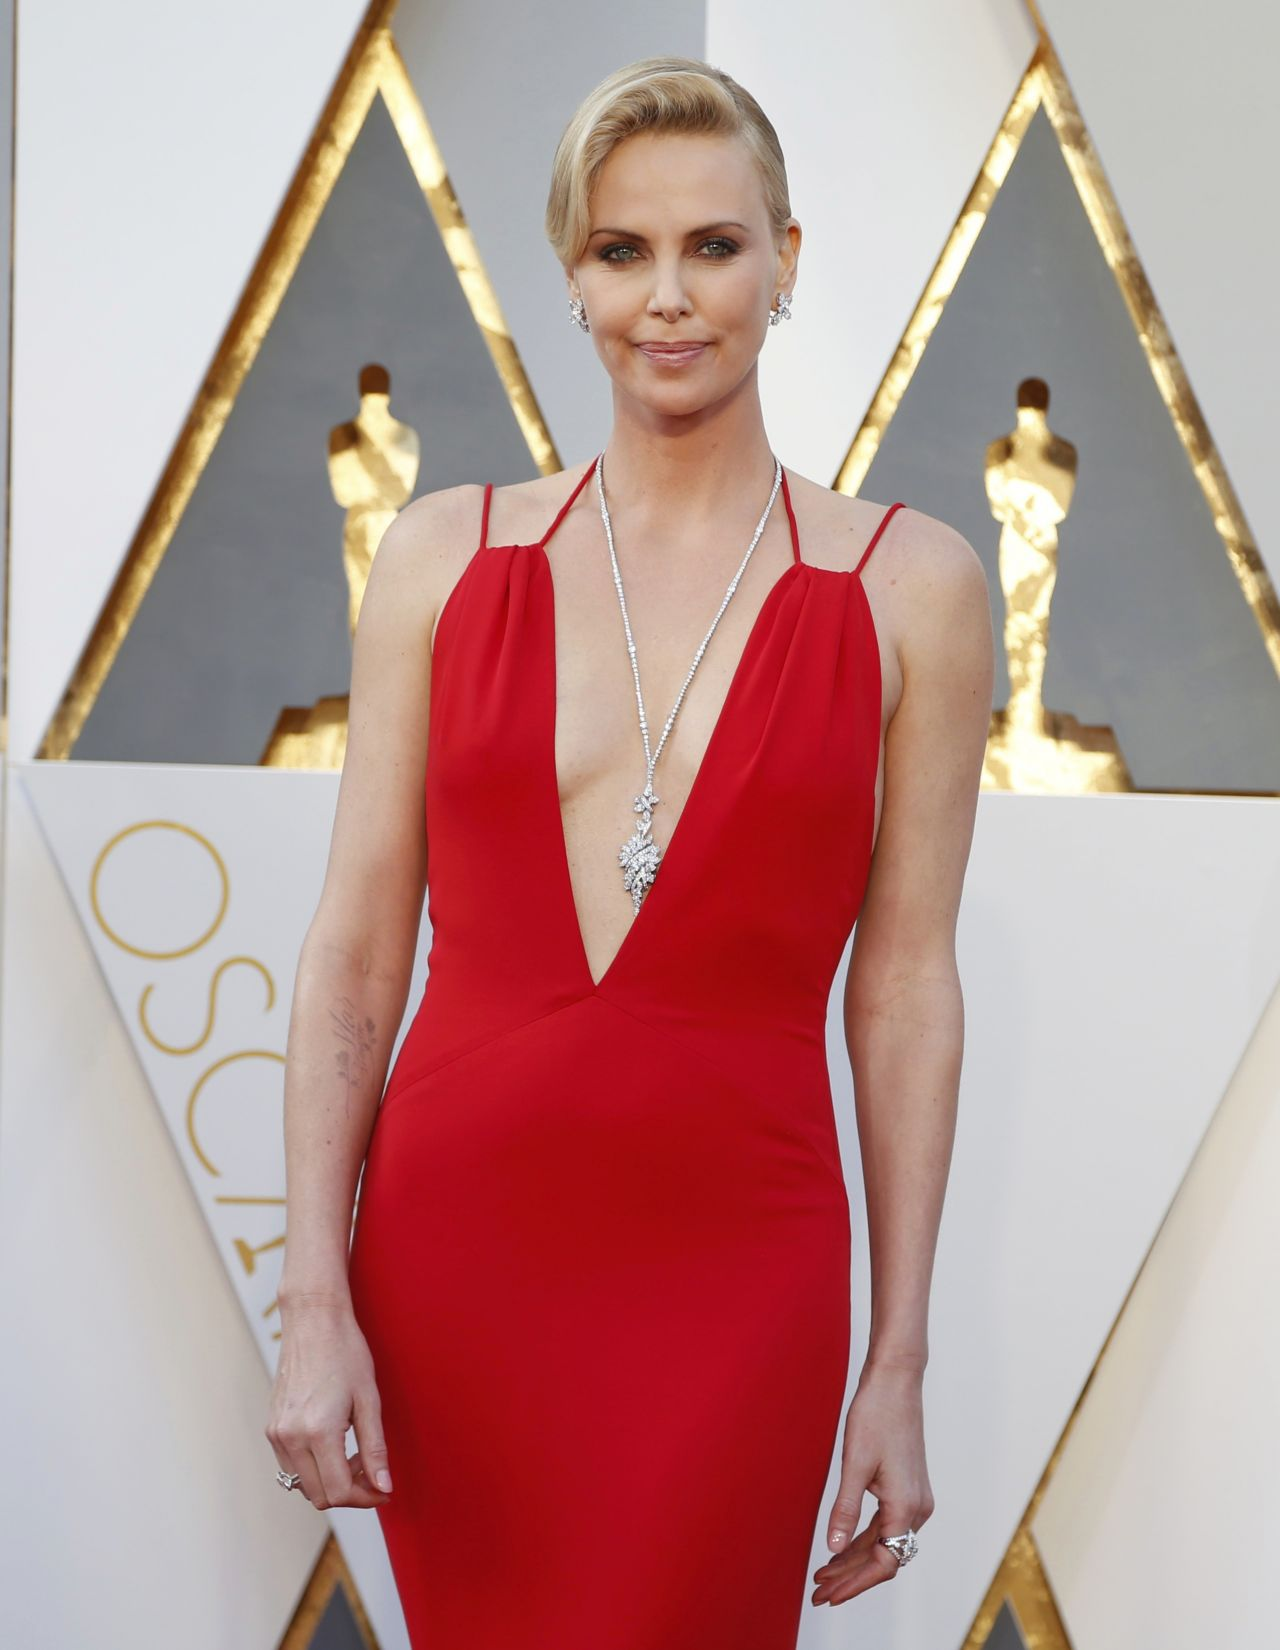 charlize-theron-oscars-2016-in-hollywood-ca-2-28-2016-1